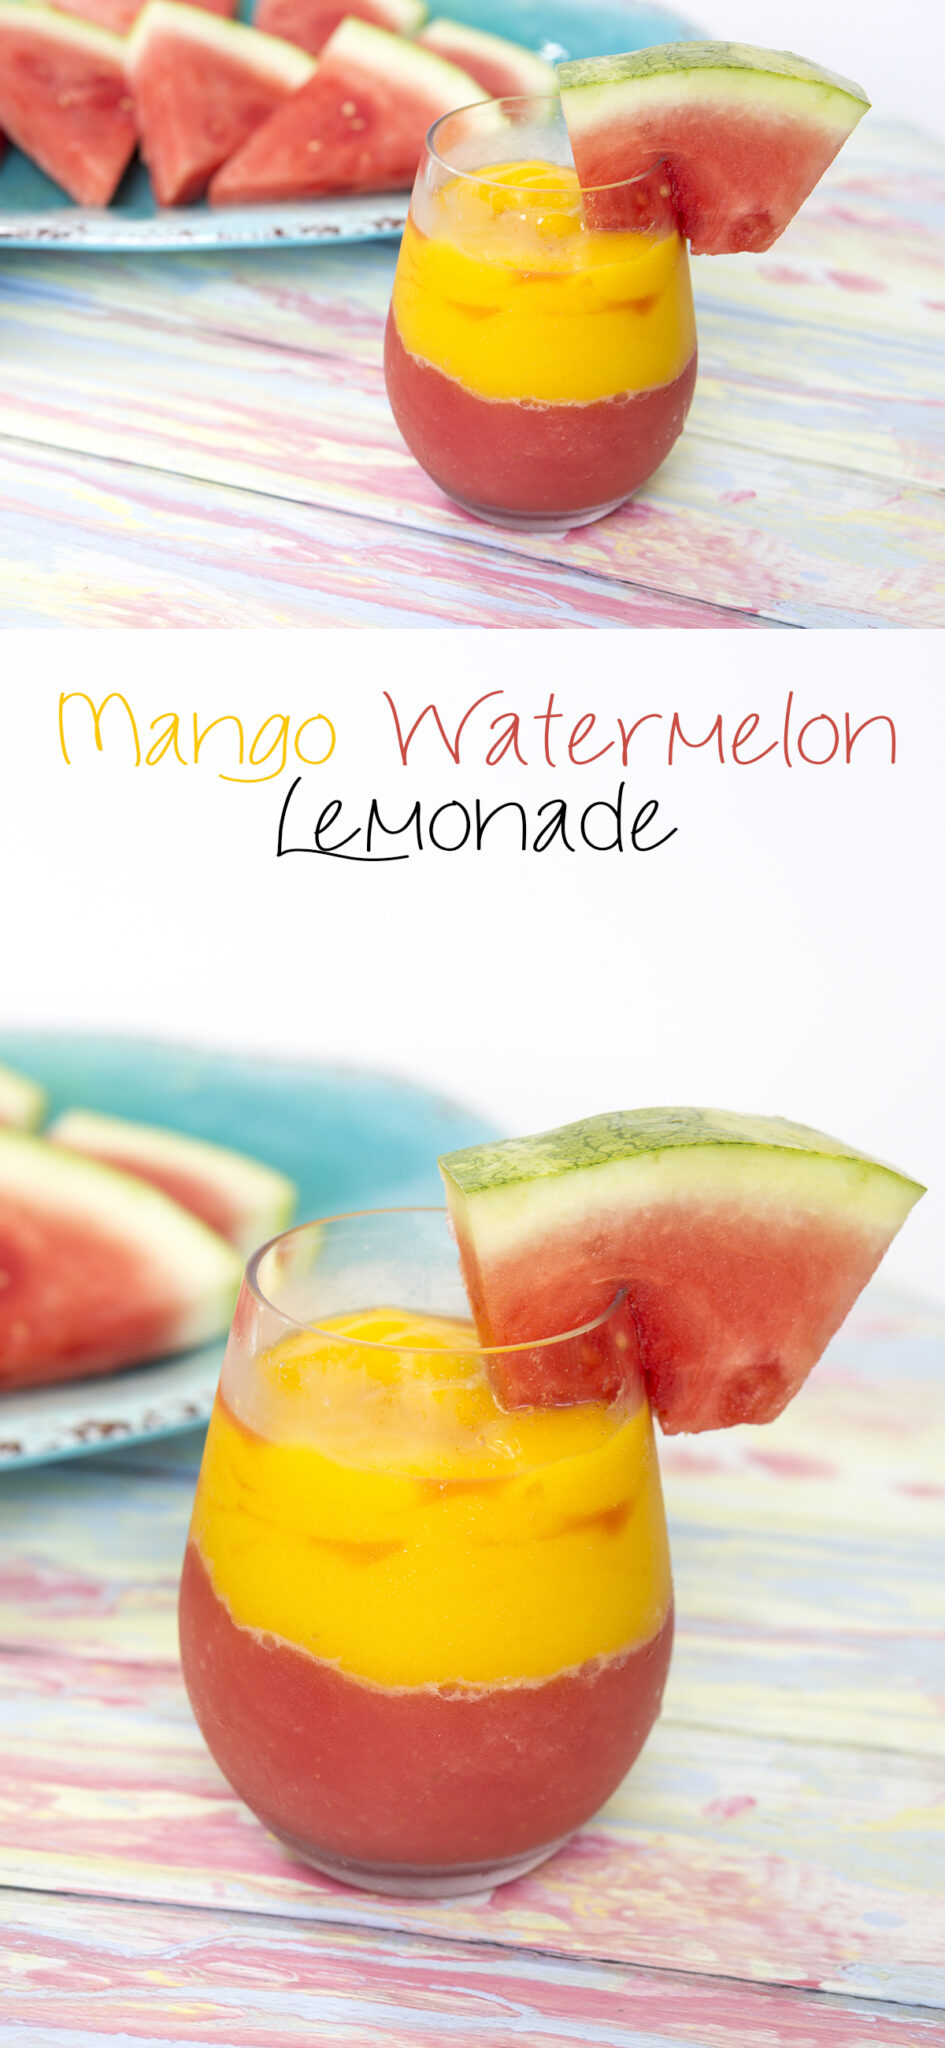 Frozen Mango Watermelon Lemonade